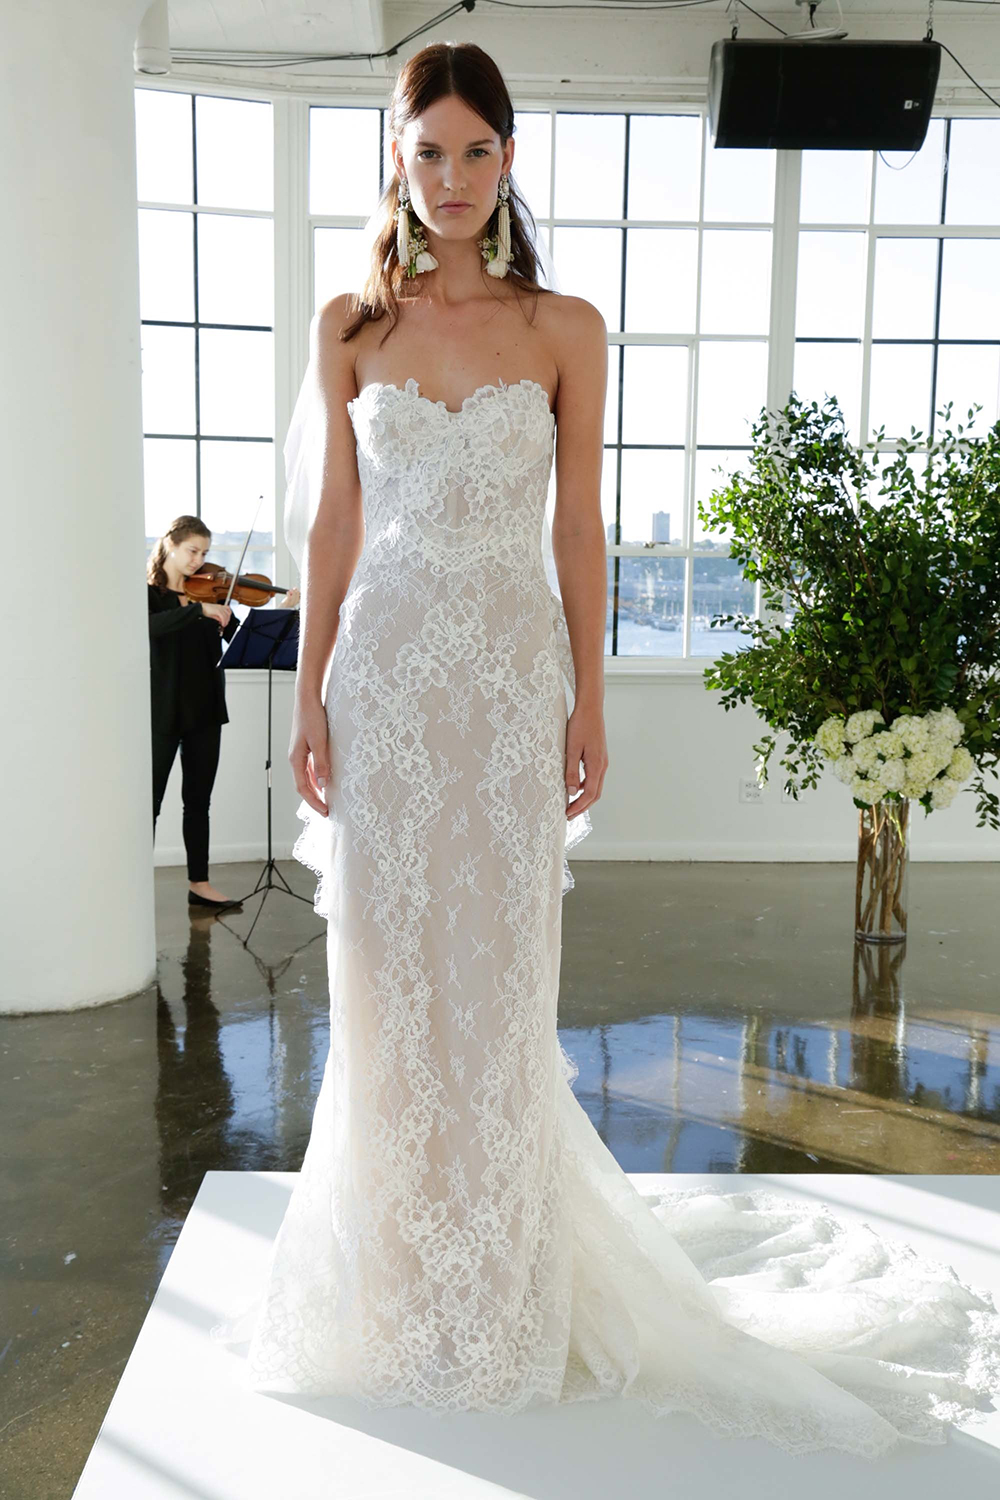 Discussion on this topic: Marchesa Fall 2019 Bridal Collection, marchesa-fall-2019-bridal-collection/